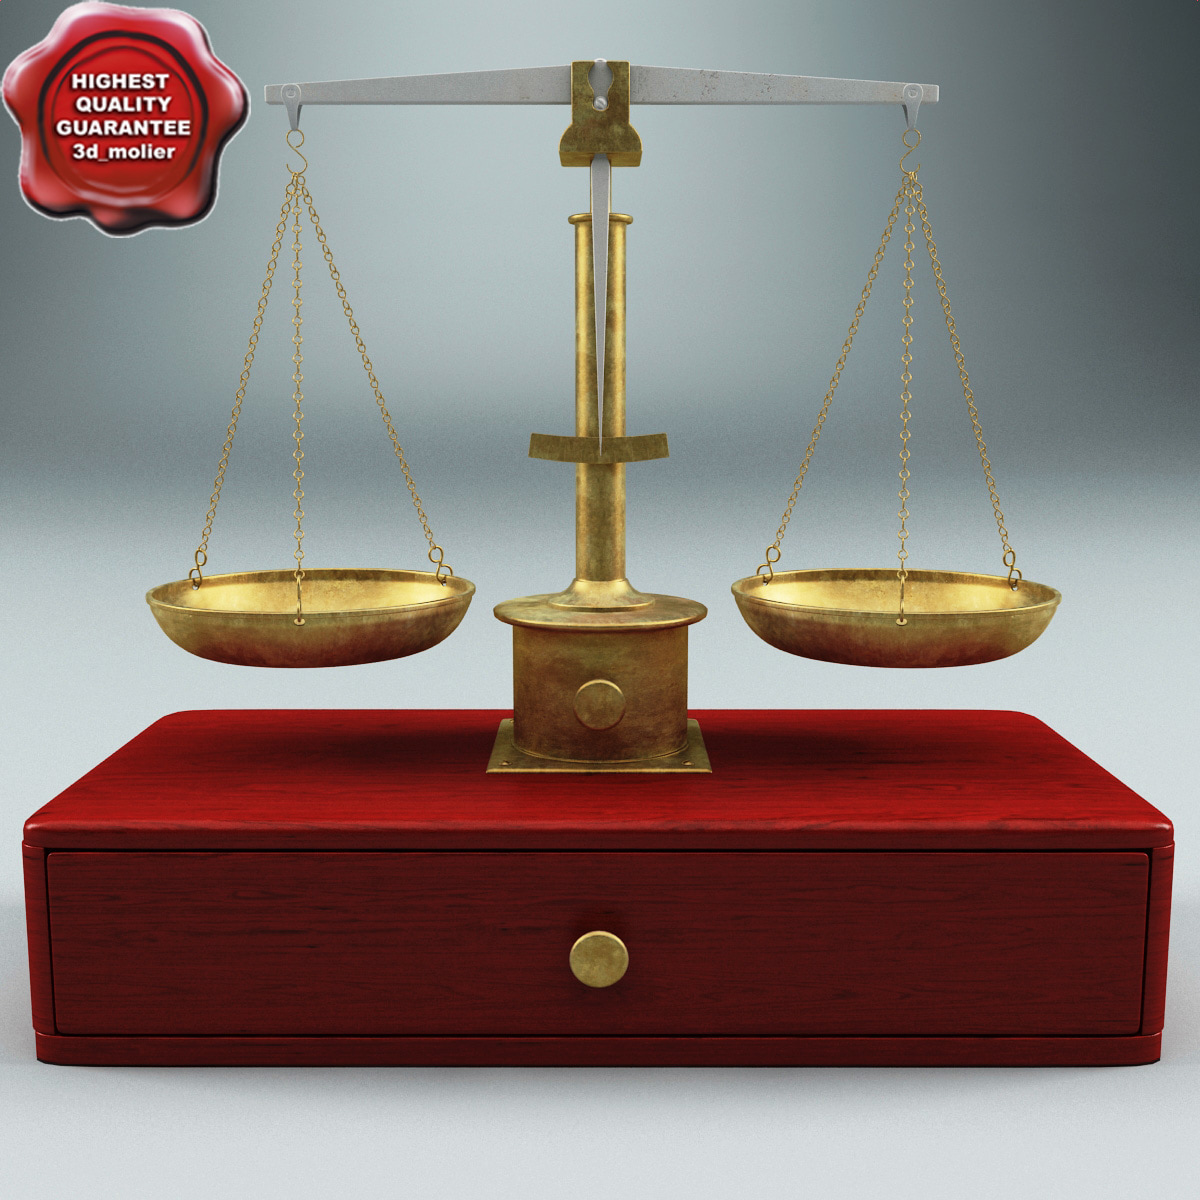 old balance scales 3d model